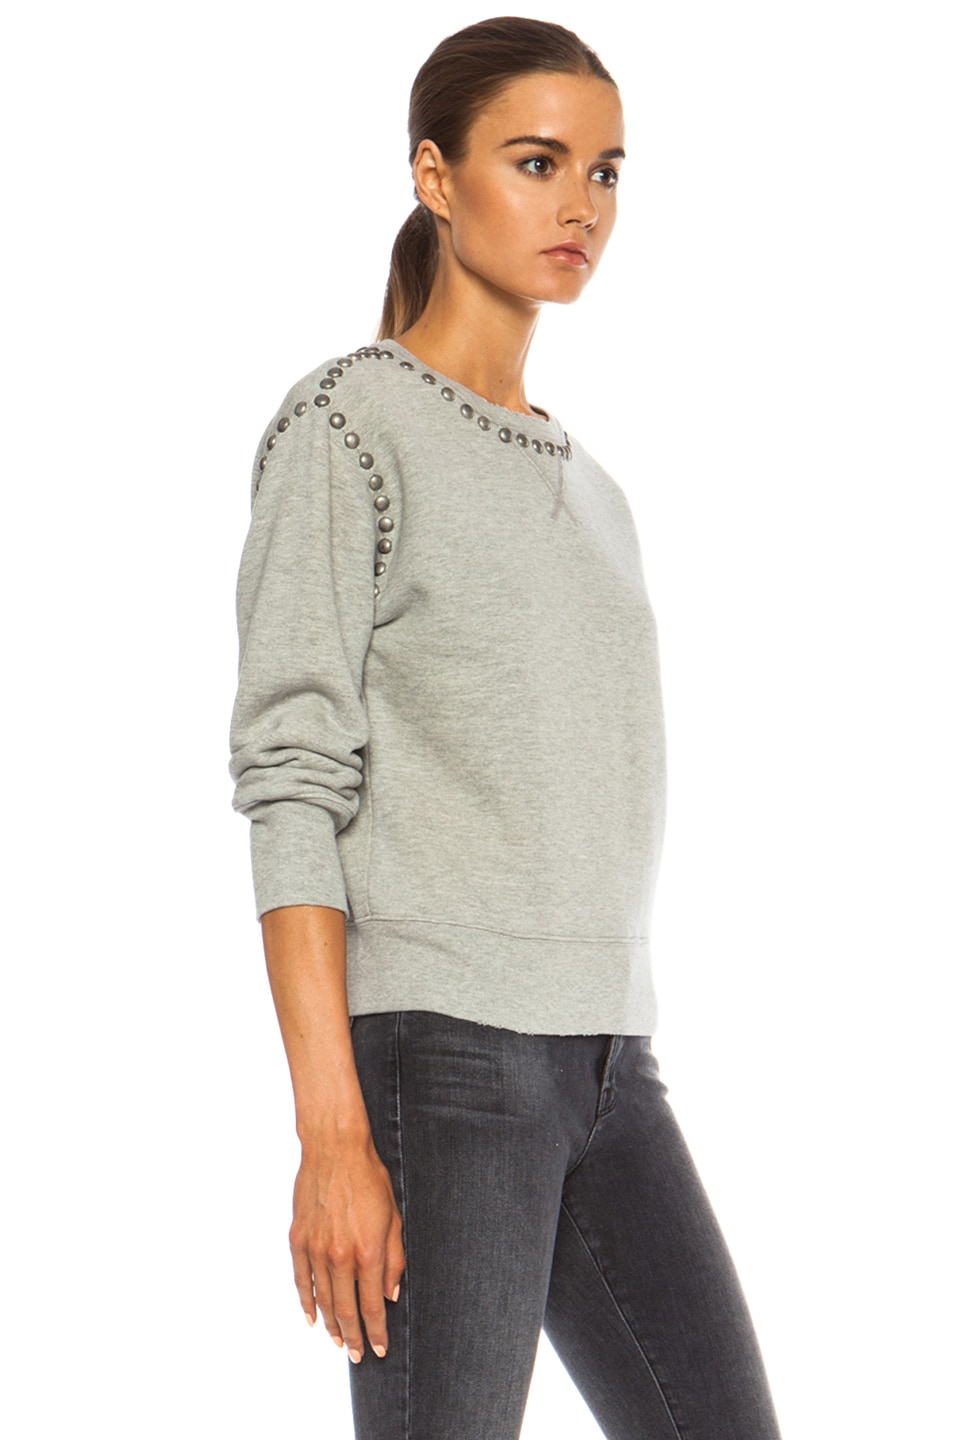 Image 3 of Citizens of Humanity Premium Vintage Camryn Sweatshirt in Studded Heather